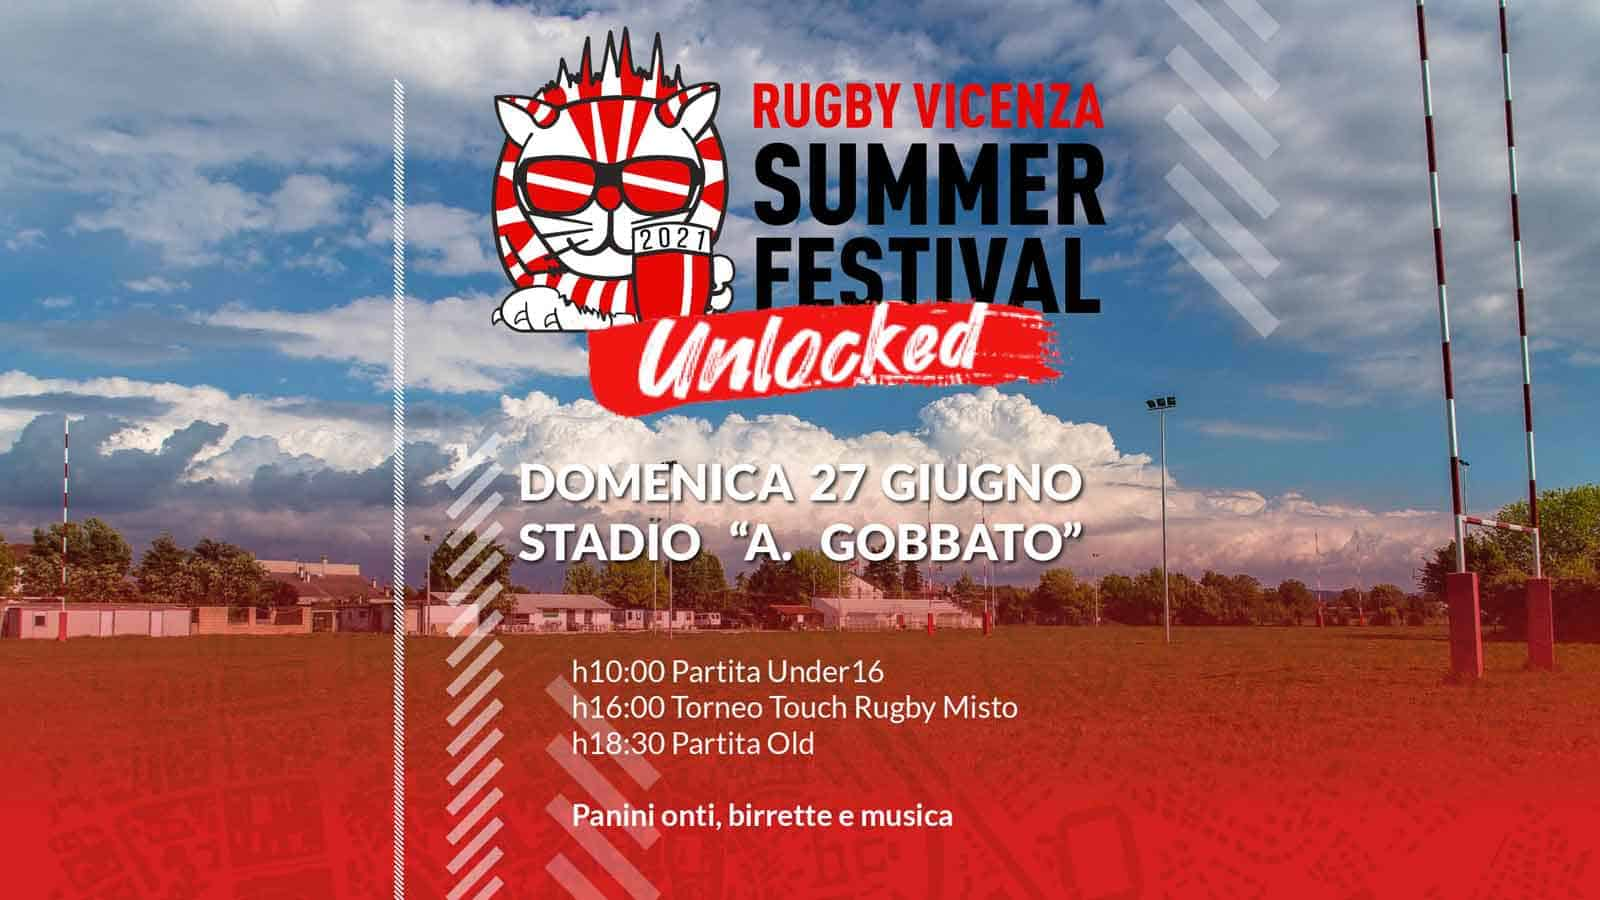 Rugby Vicenza Summer Festival Unlocked 2021